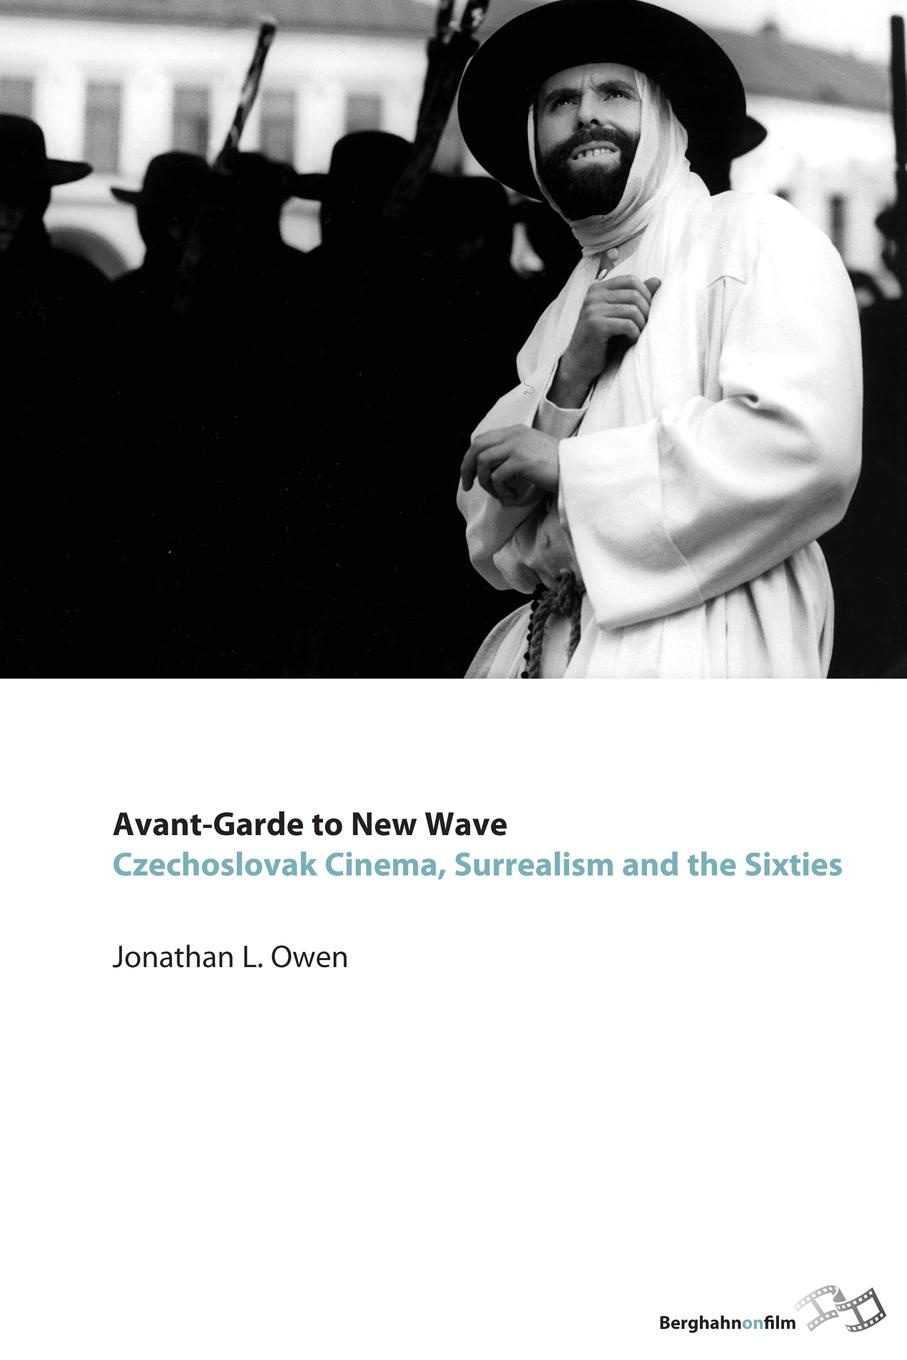 Jonathan L. Owen Avant-Garde to New Wave. Czechoslovak Cinema, Surrealism and the Sixties